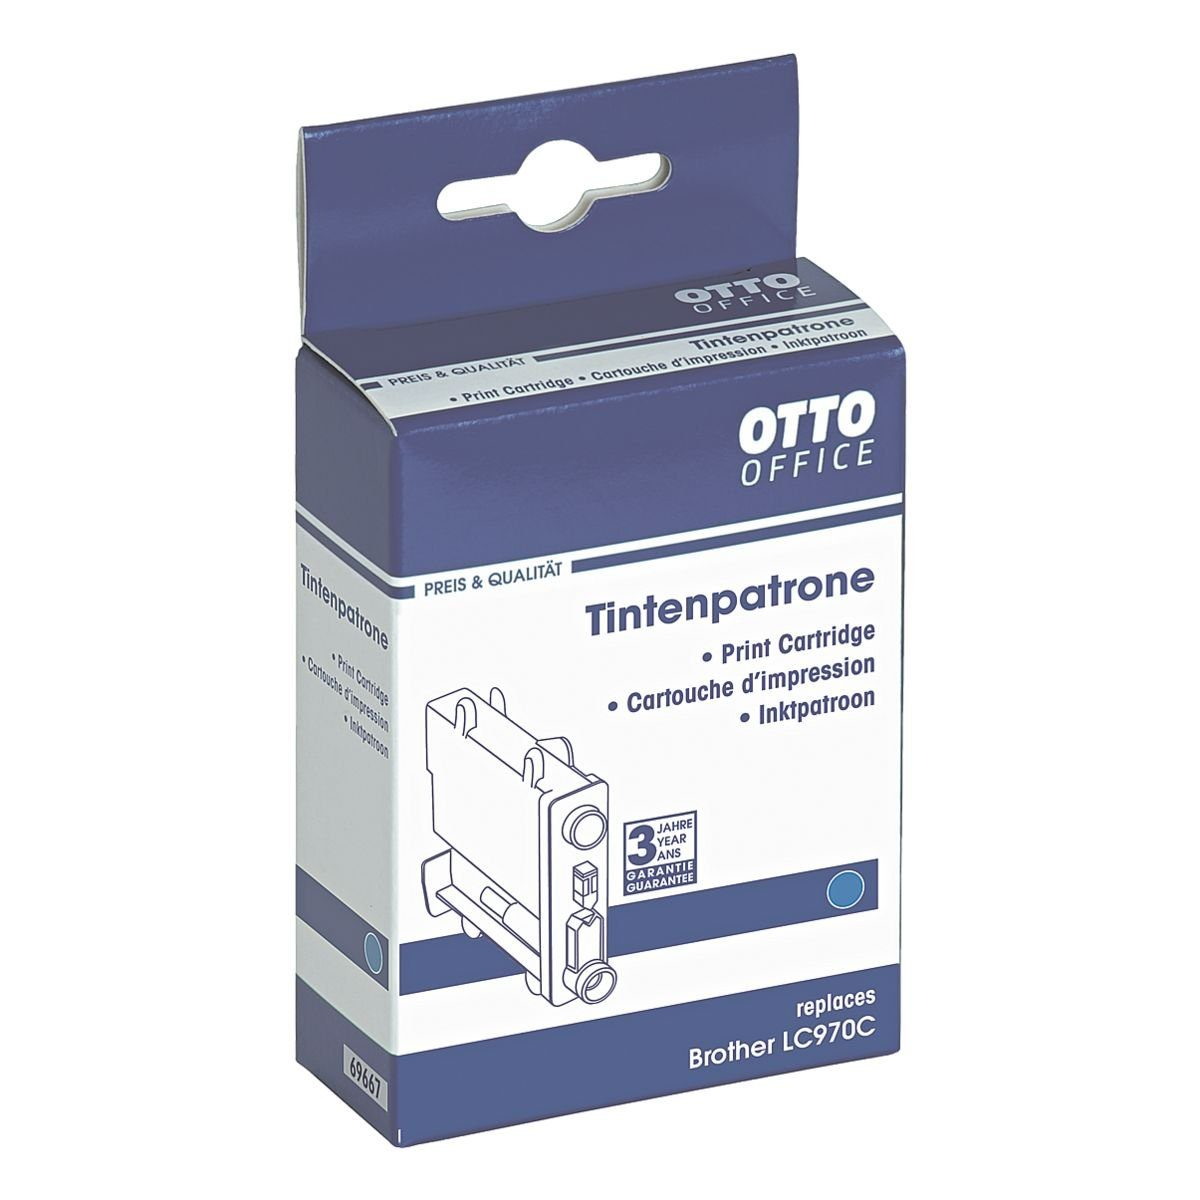 OTTO Office Standard Tintenpatrone ersetzt Brother »LC970C«